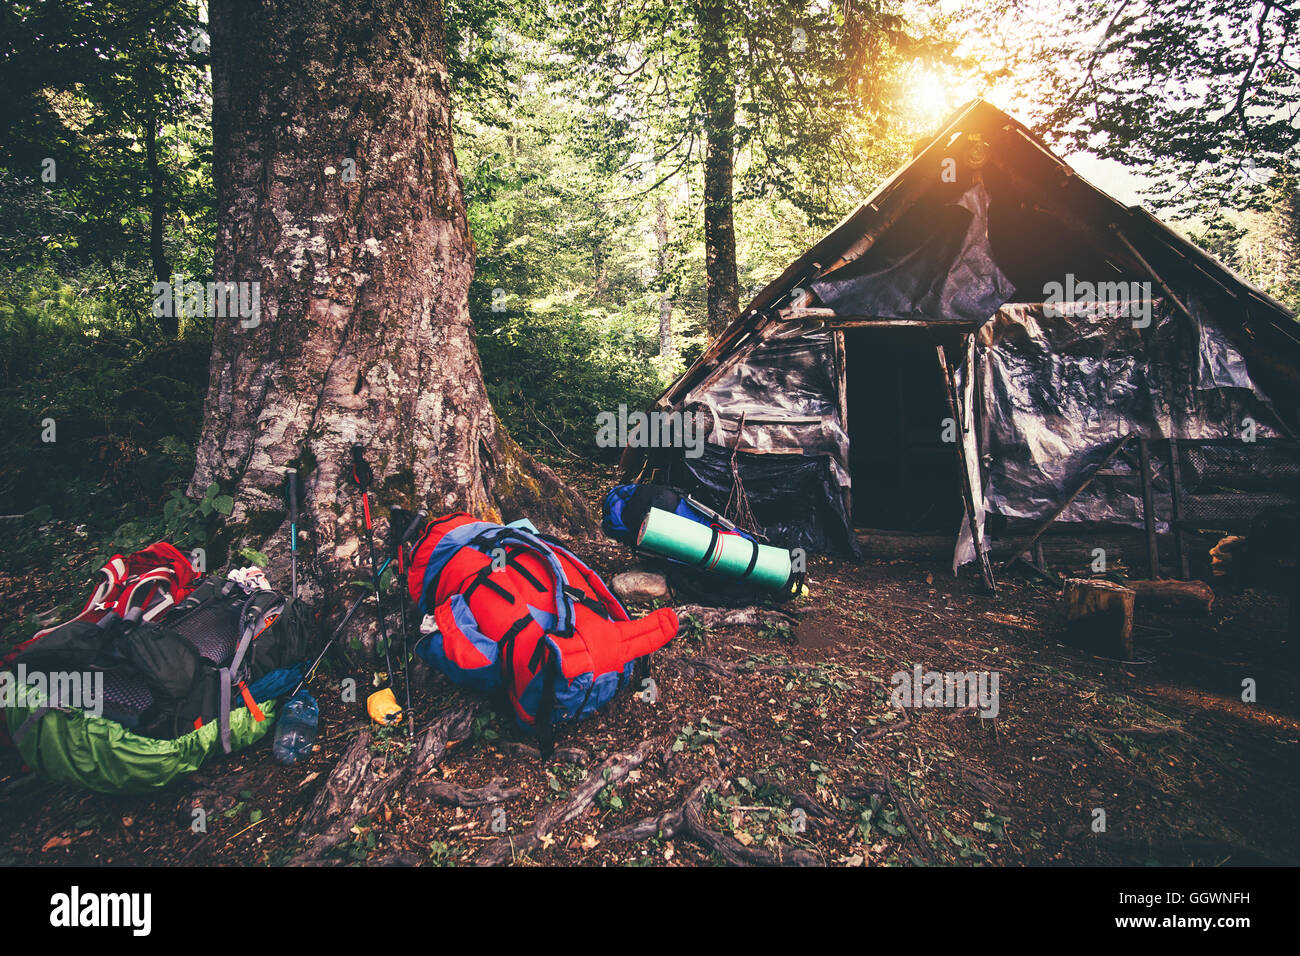 Backpacks and abandoned house camping outdoor Travel Lifestyle hiking equipment forest nature on background - Stock Image